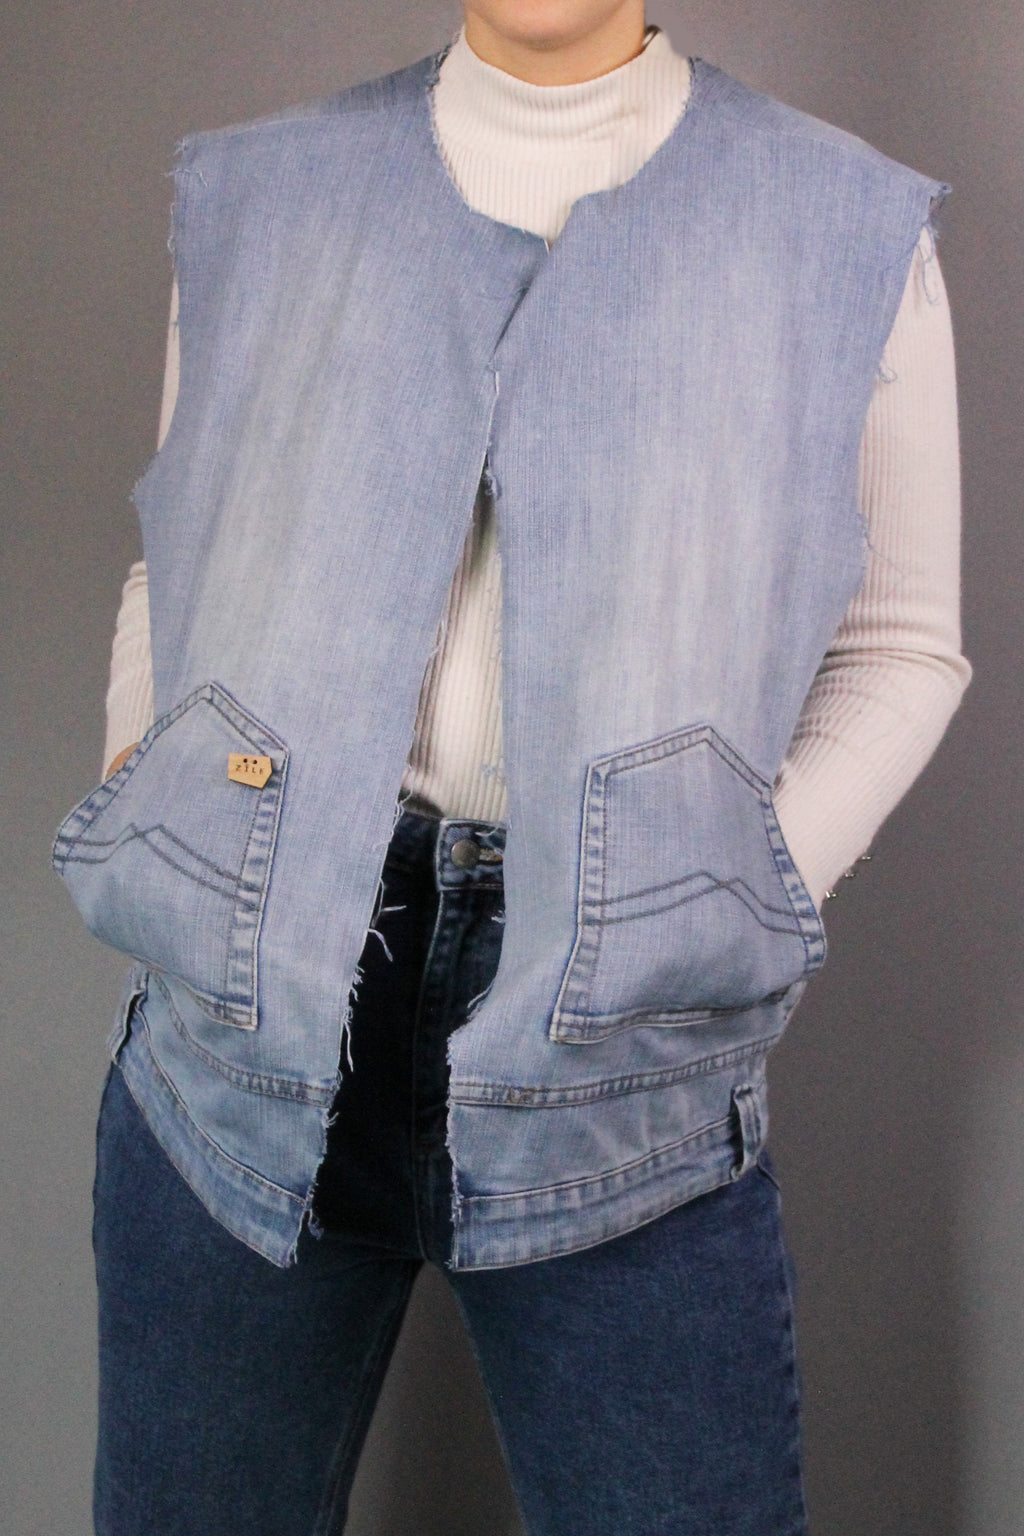 LIGHT UNISEX DENIM WAISTCOAT